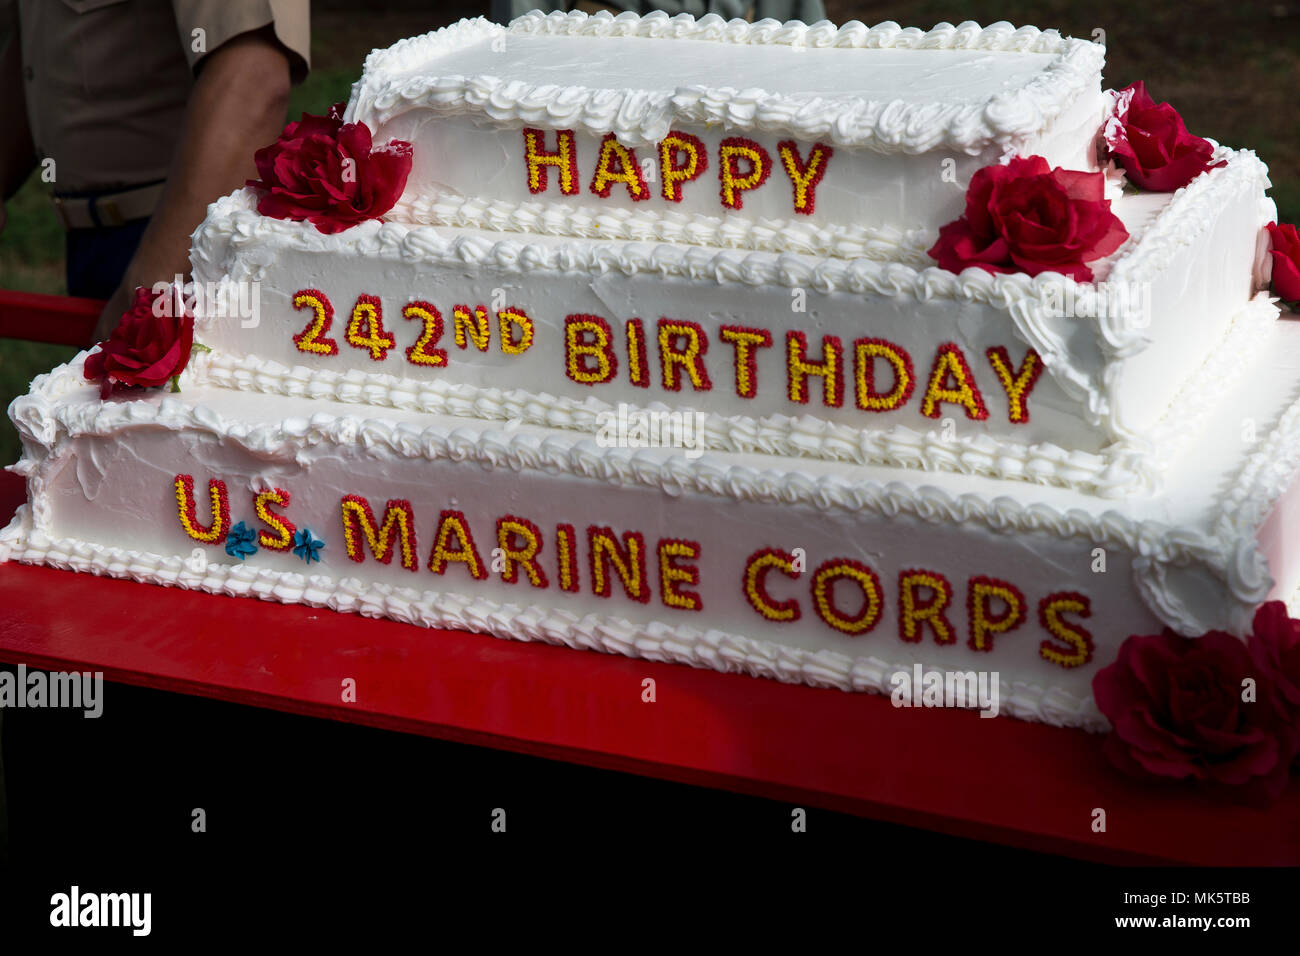 The Birthday Cake Is A Ceremonial Element Of Annual US Marine Corps Pageant Base Hawaii Nov 9 2017